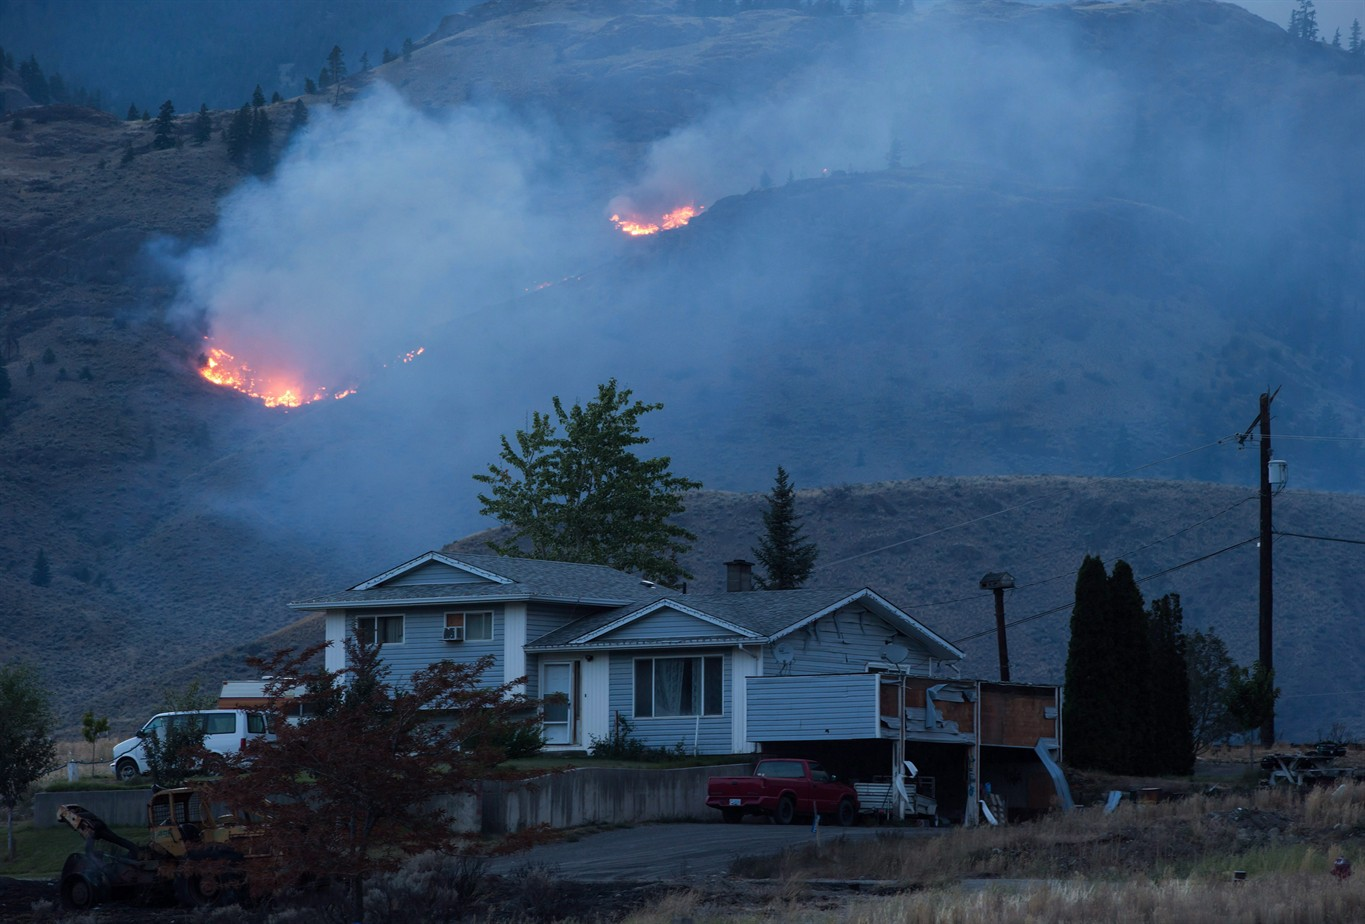 looters taking advantage of b c fires are typical at natural